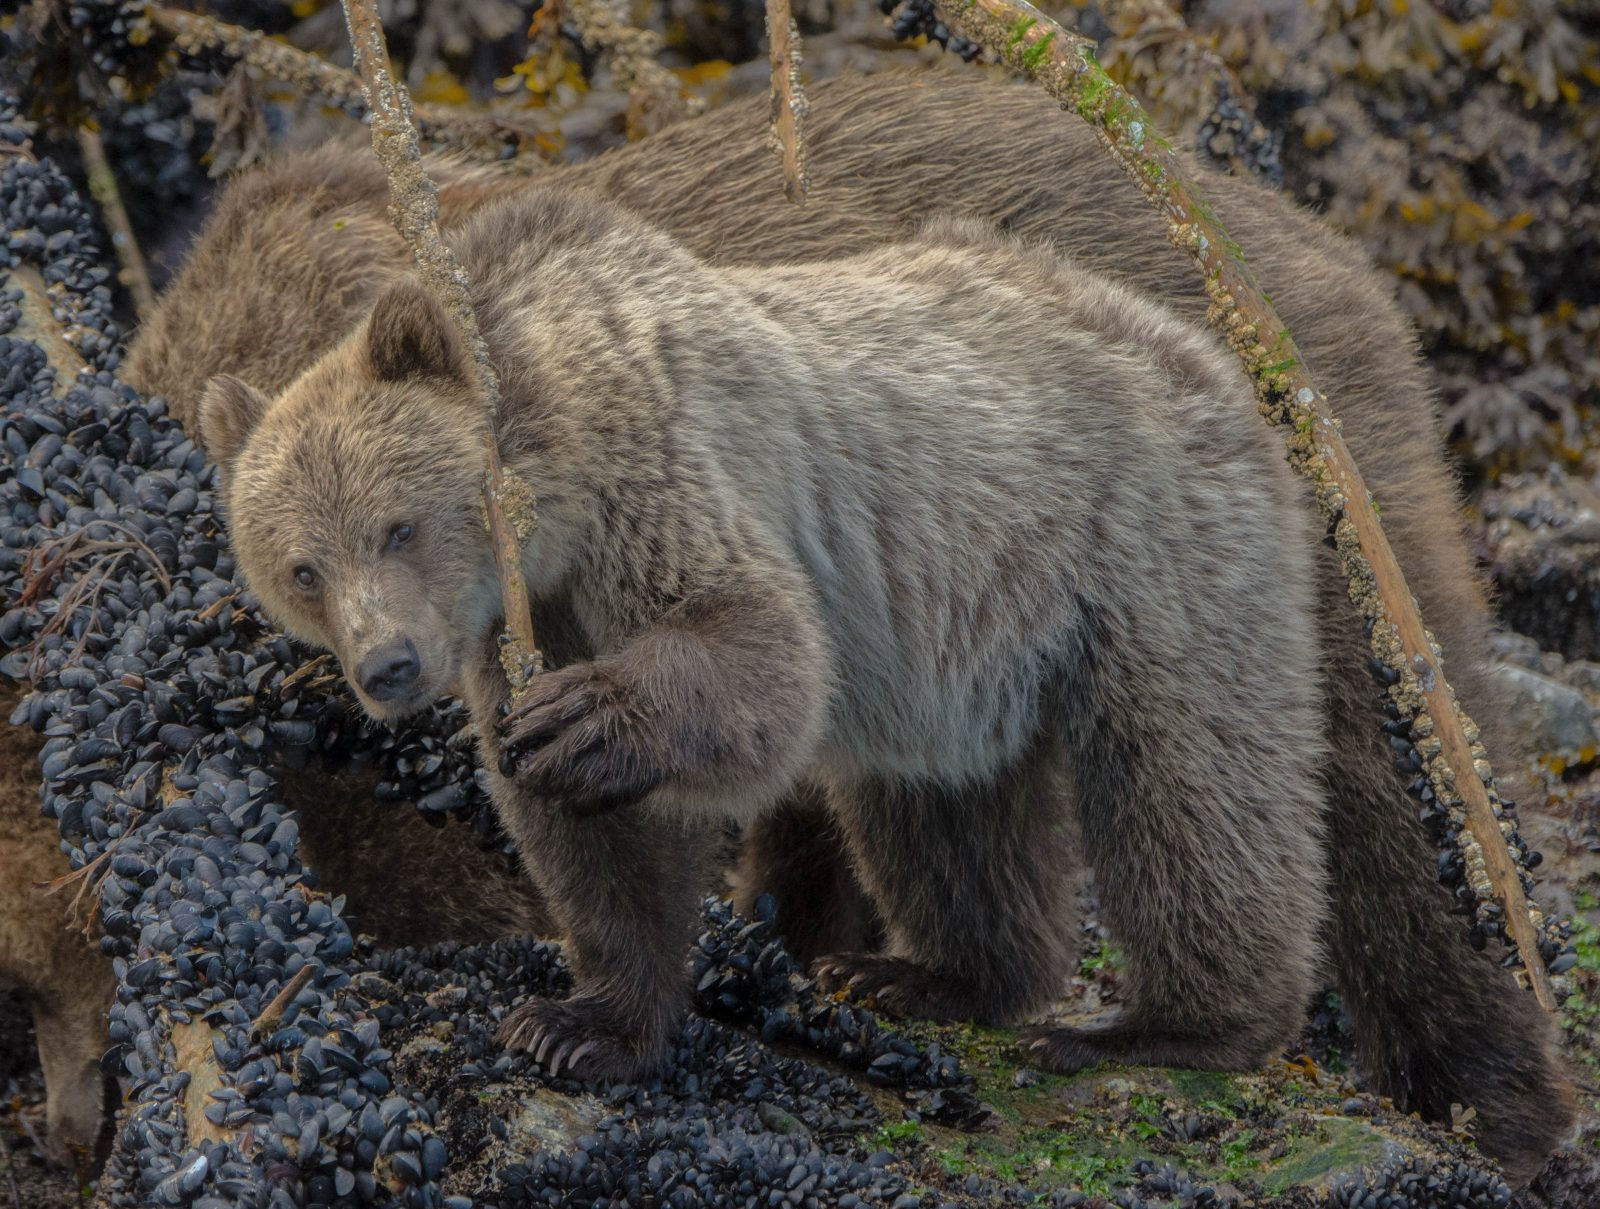 Grizzly Bear Cub Feasting on Mussels.